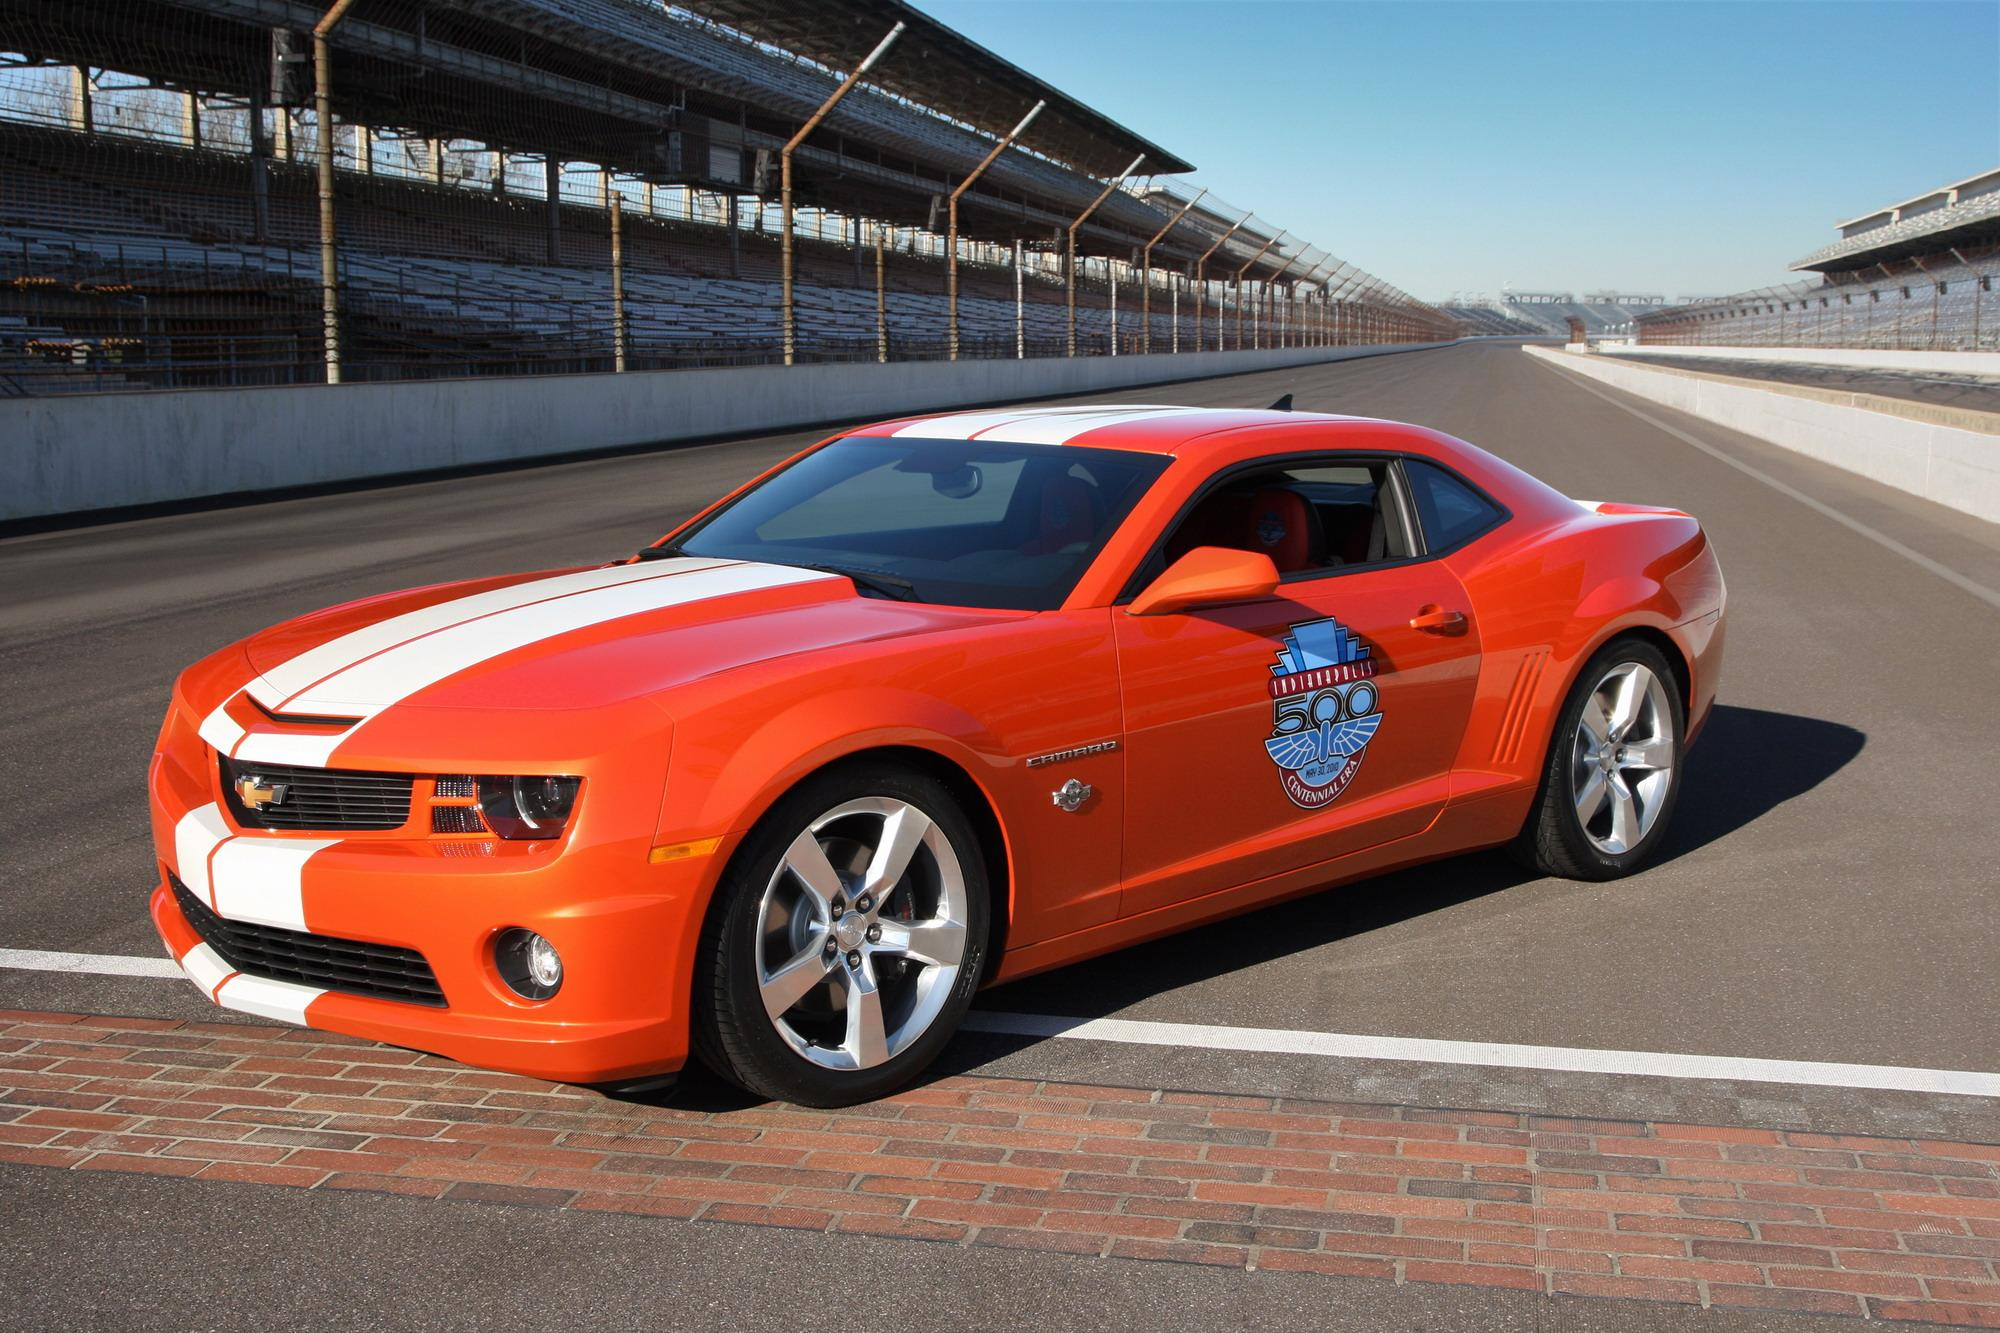 Safety Car Light Bar 2010 Chevrolet Camaro Ss Indianapolis 500 Pace Car Top Speed